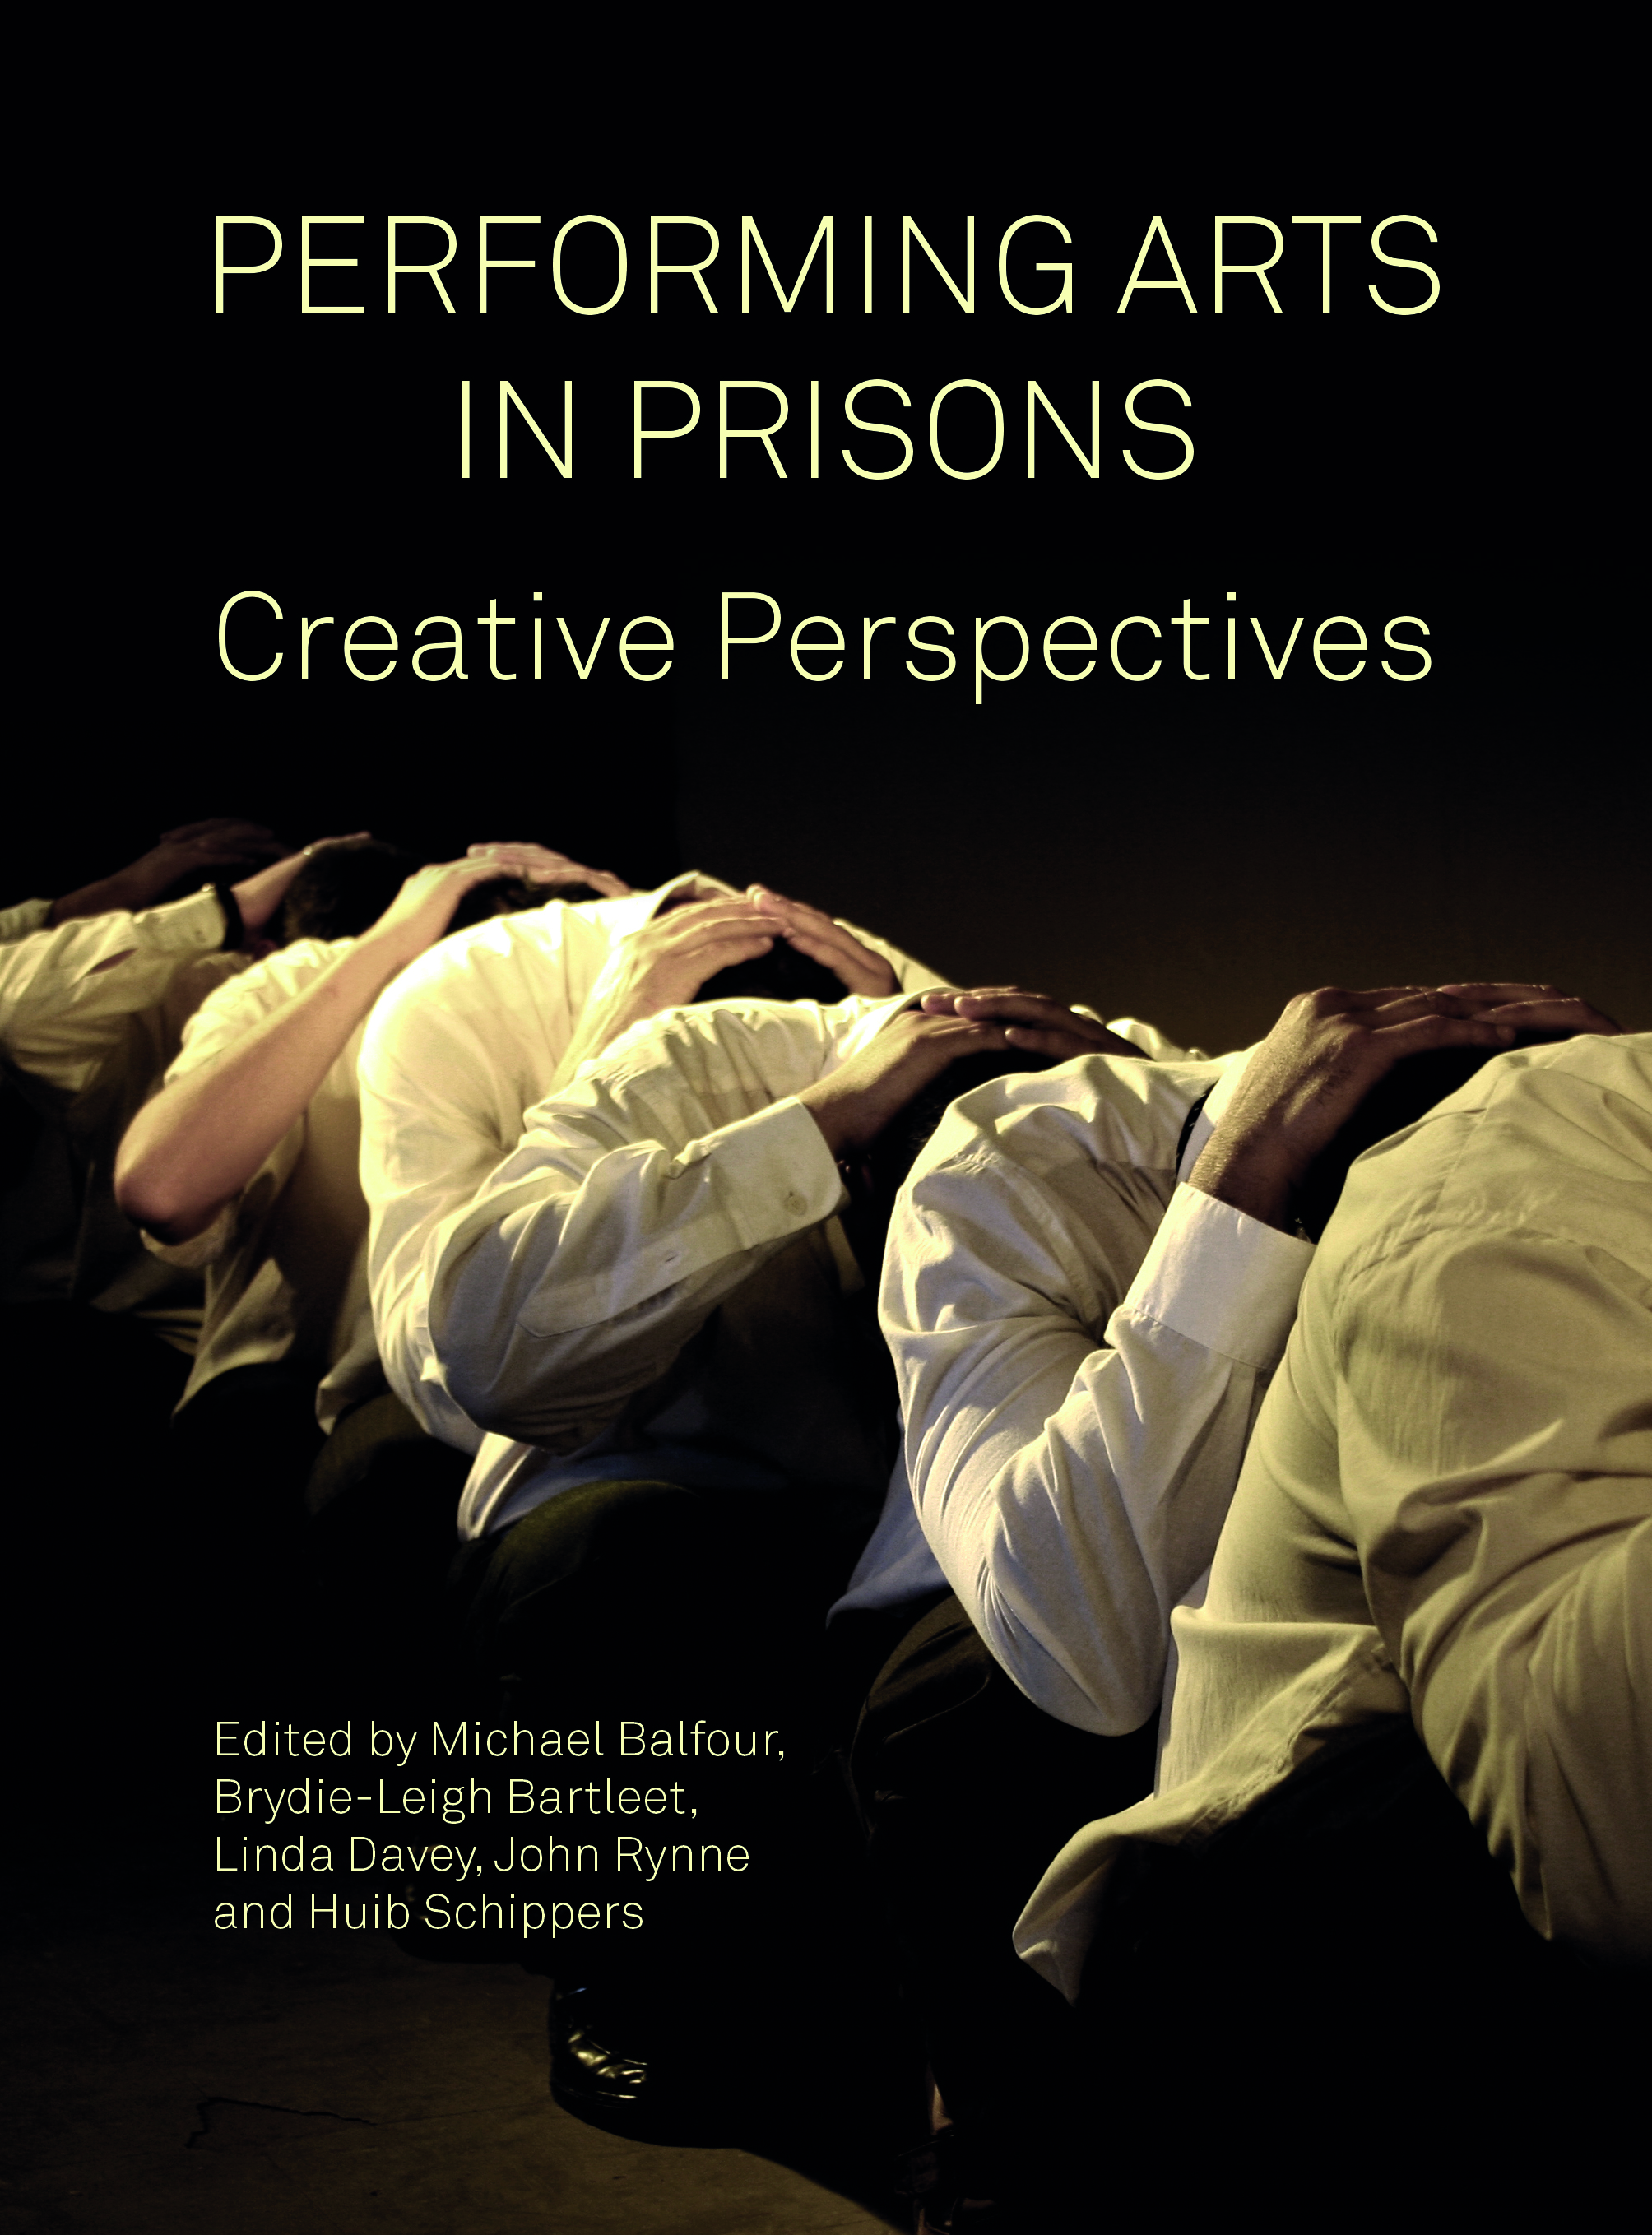 Performing Arts in Prison